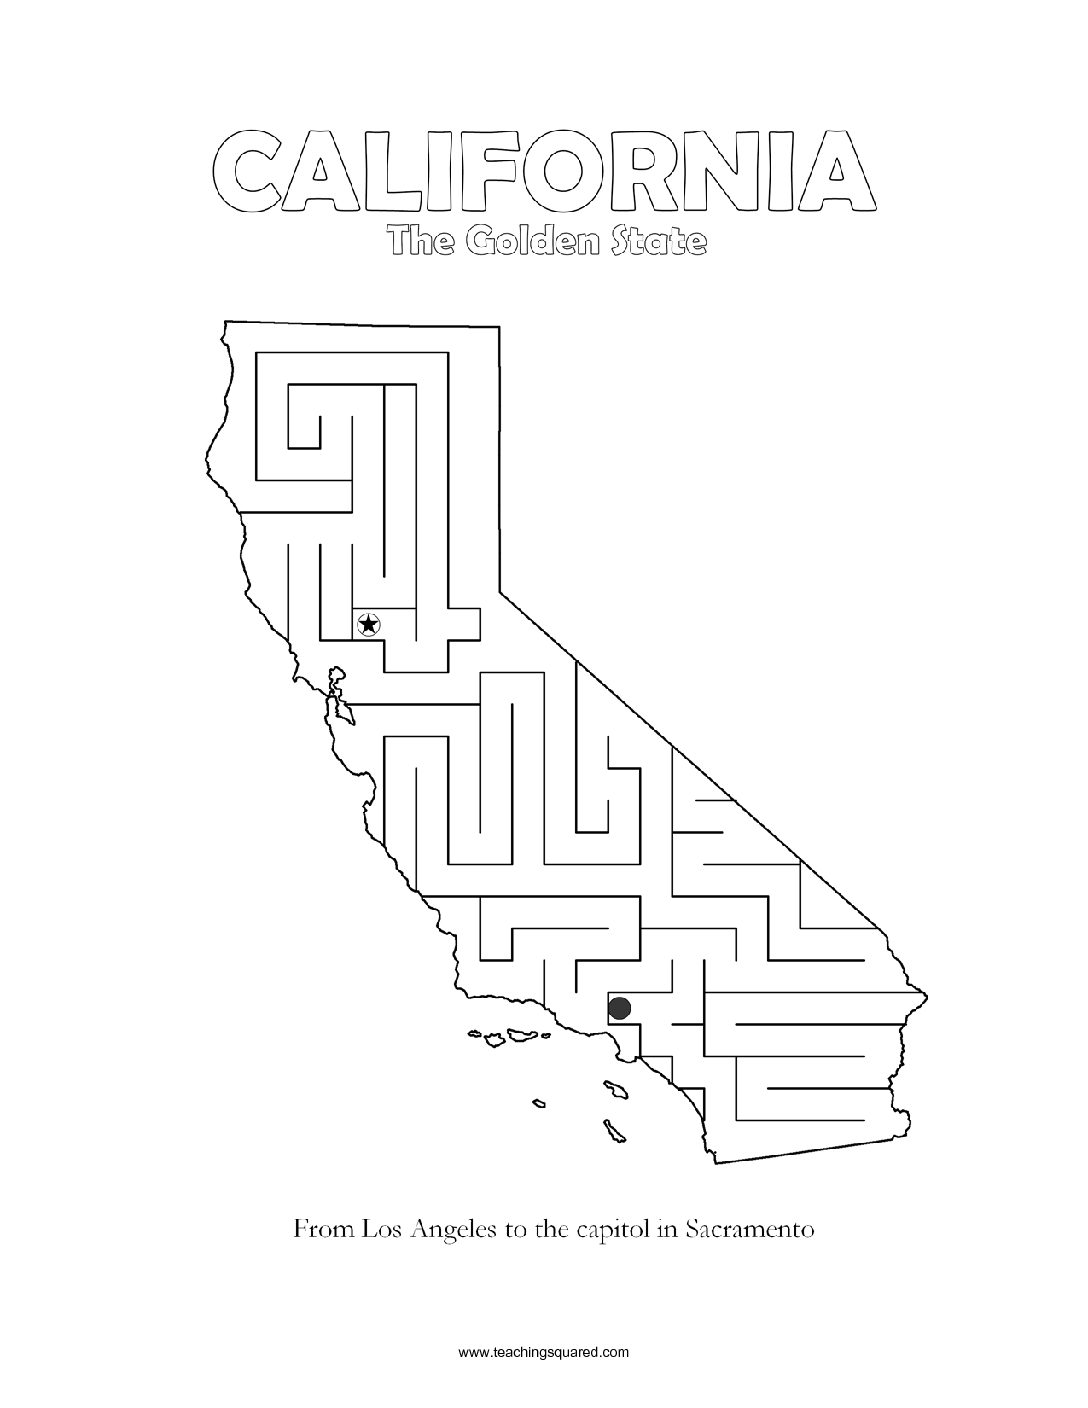 United states mazes teaching squared fun california maze game top worksheets altavistaventures Gallery